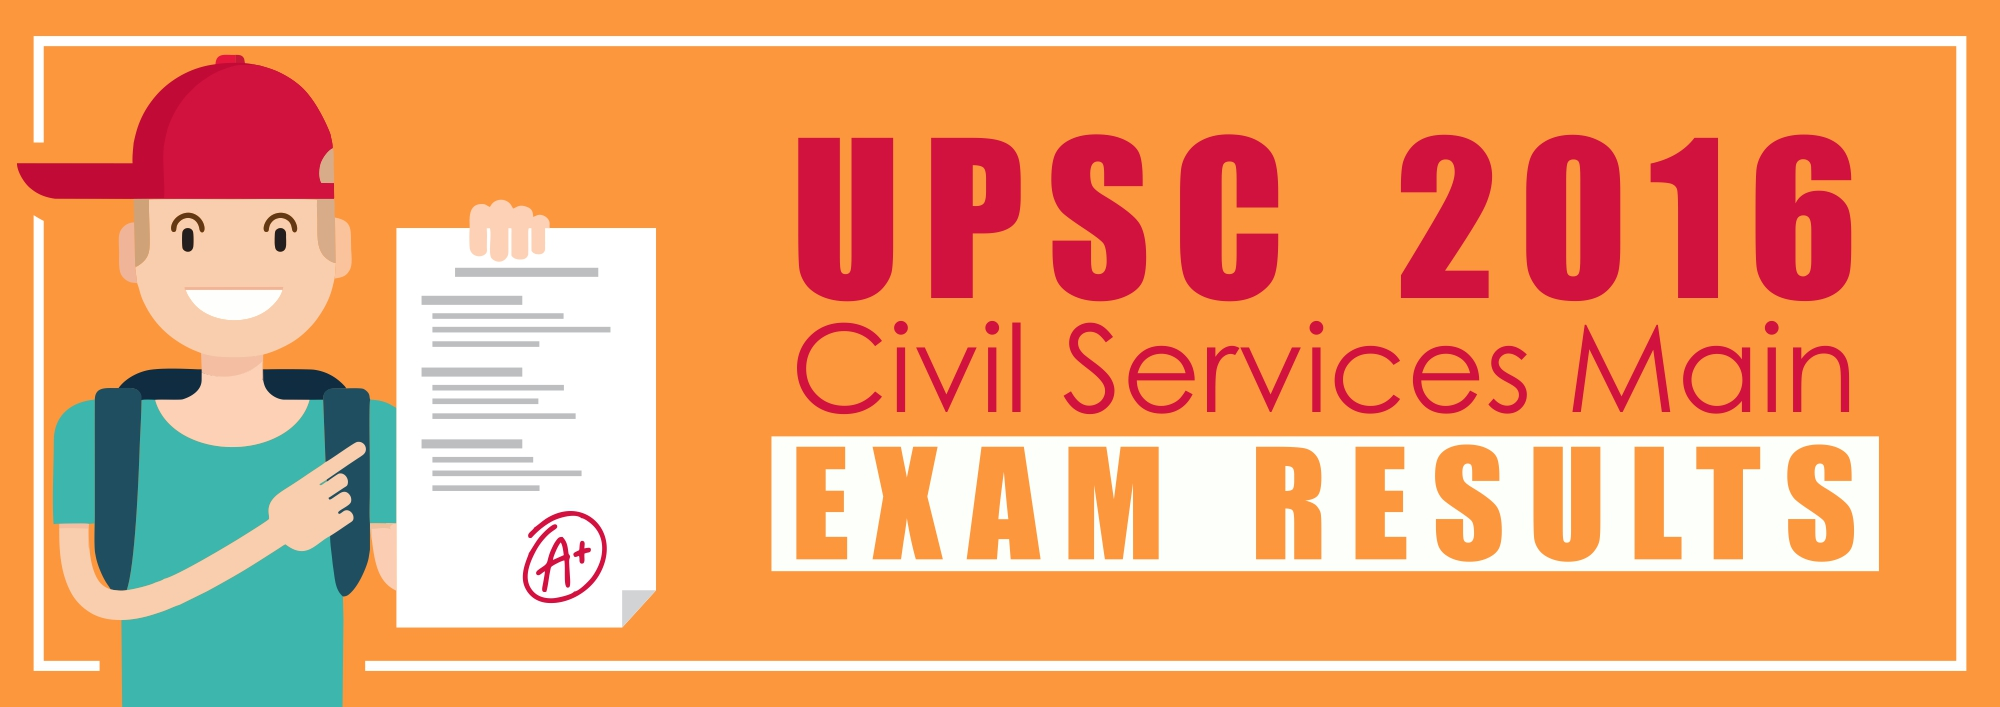 upsc-mains-exam-results-2016-declared